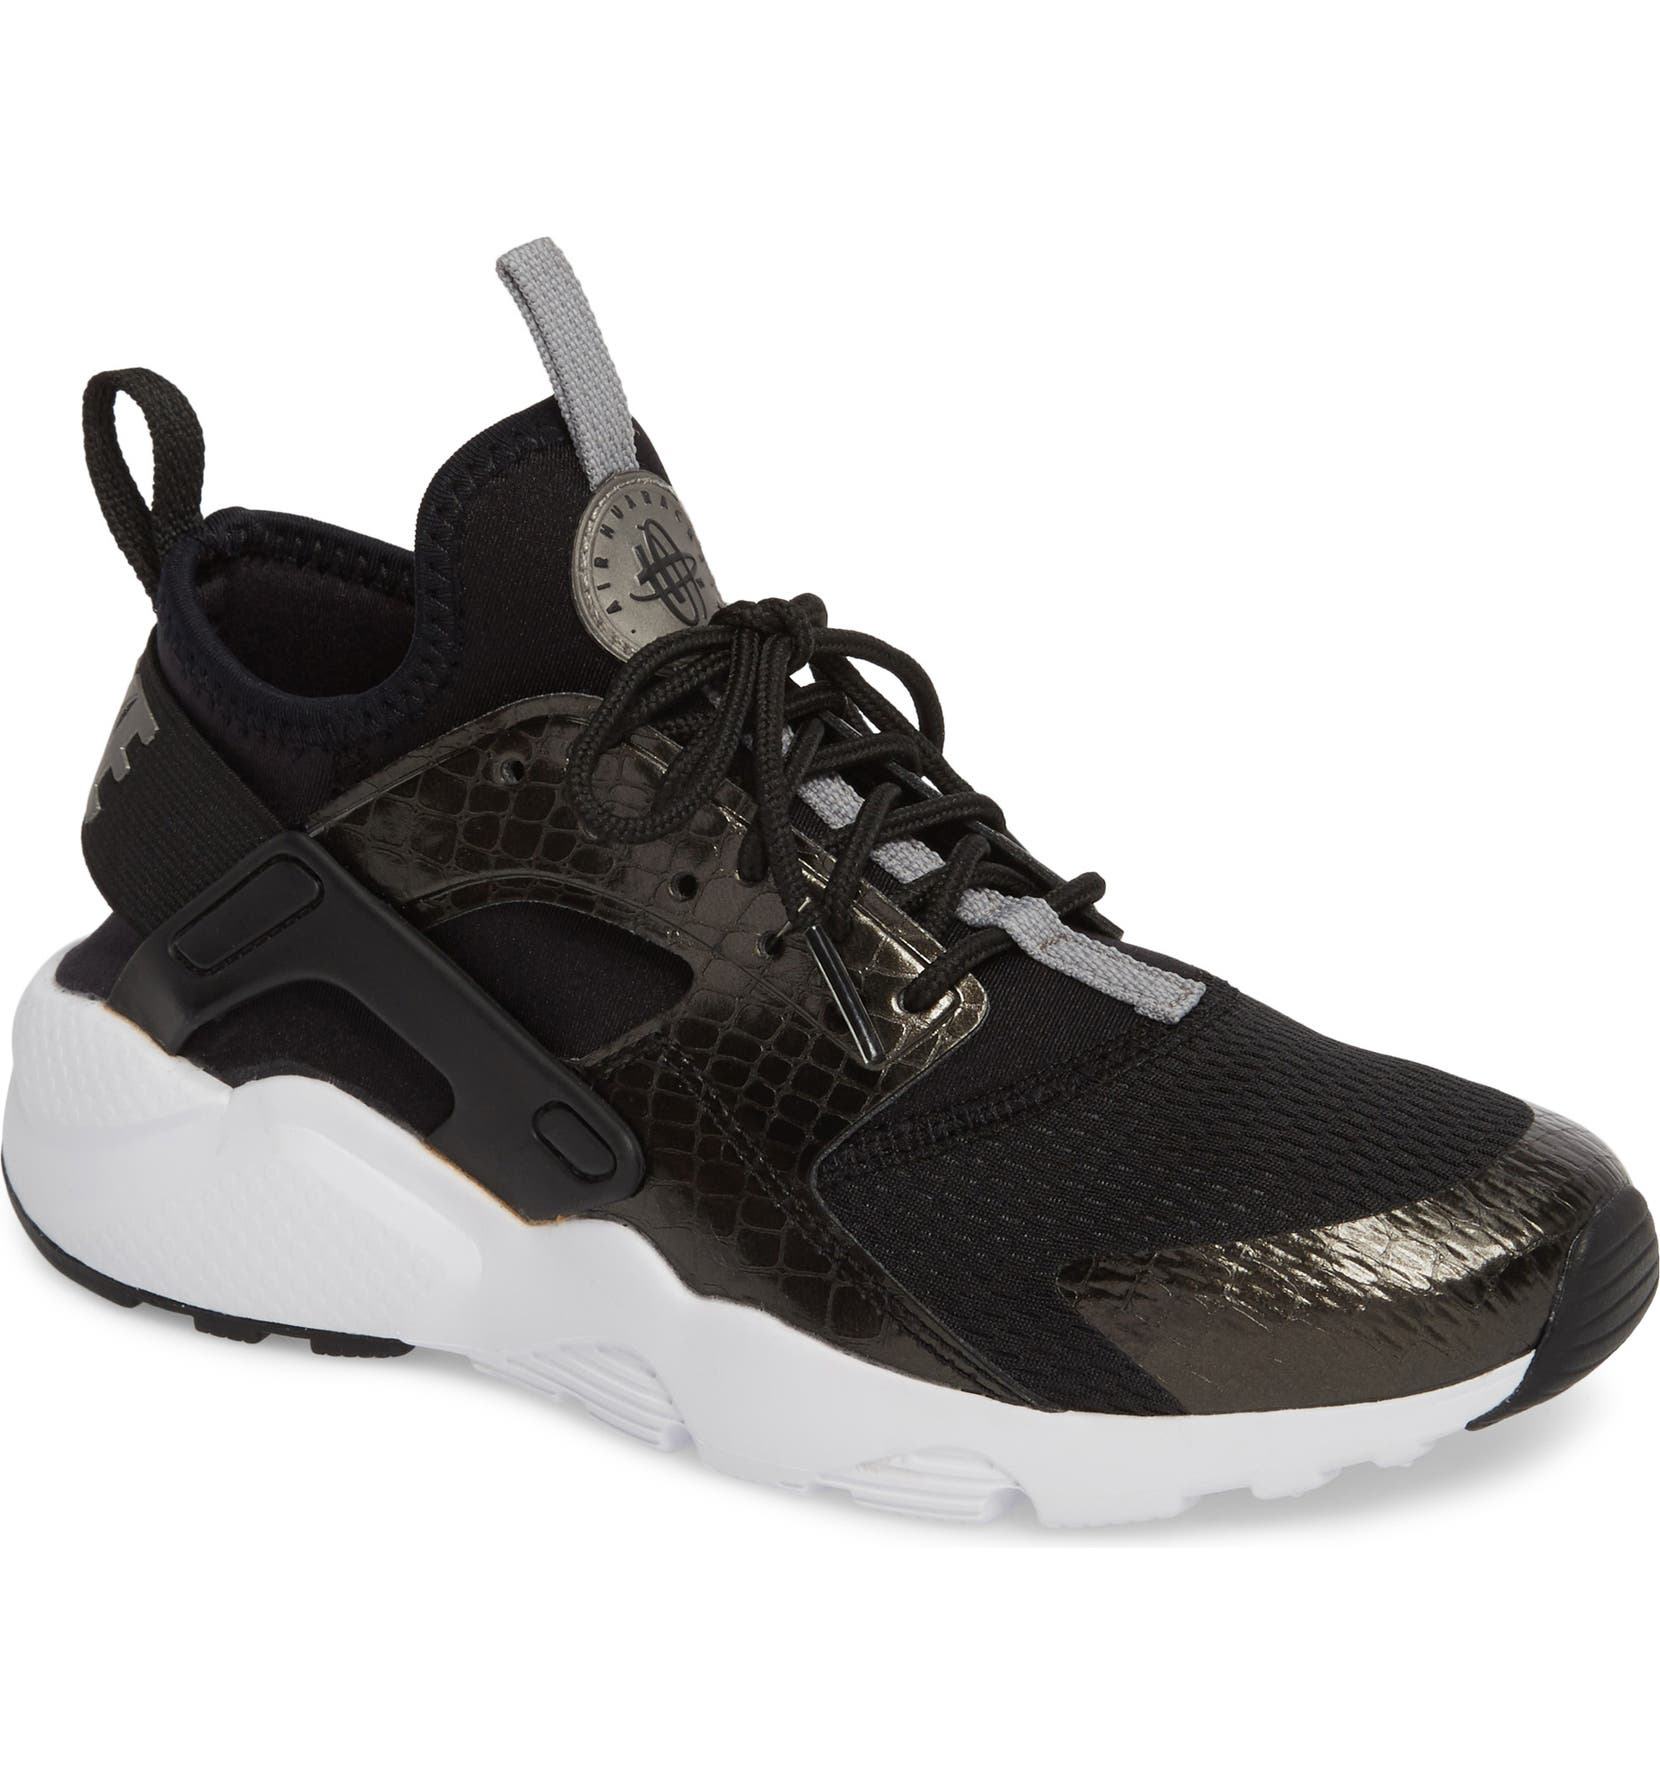 3d76bc93dc Nike Air Huarache Run Ultra Sneaker (Big Kid) | Nordstrom